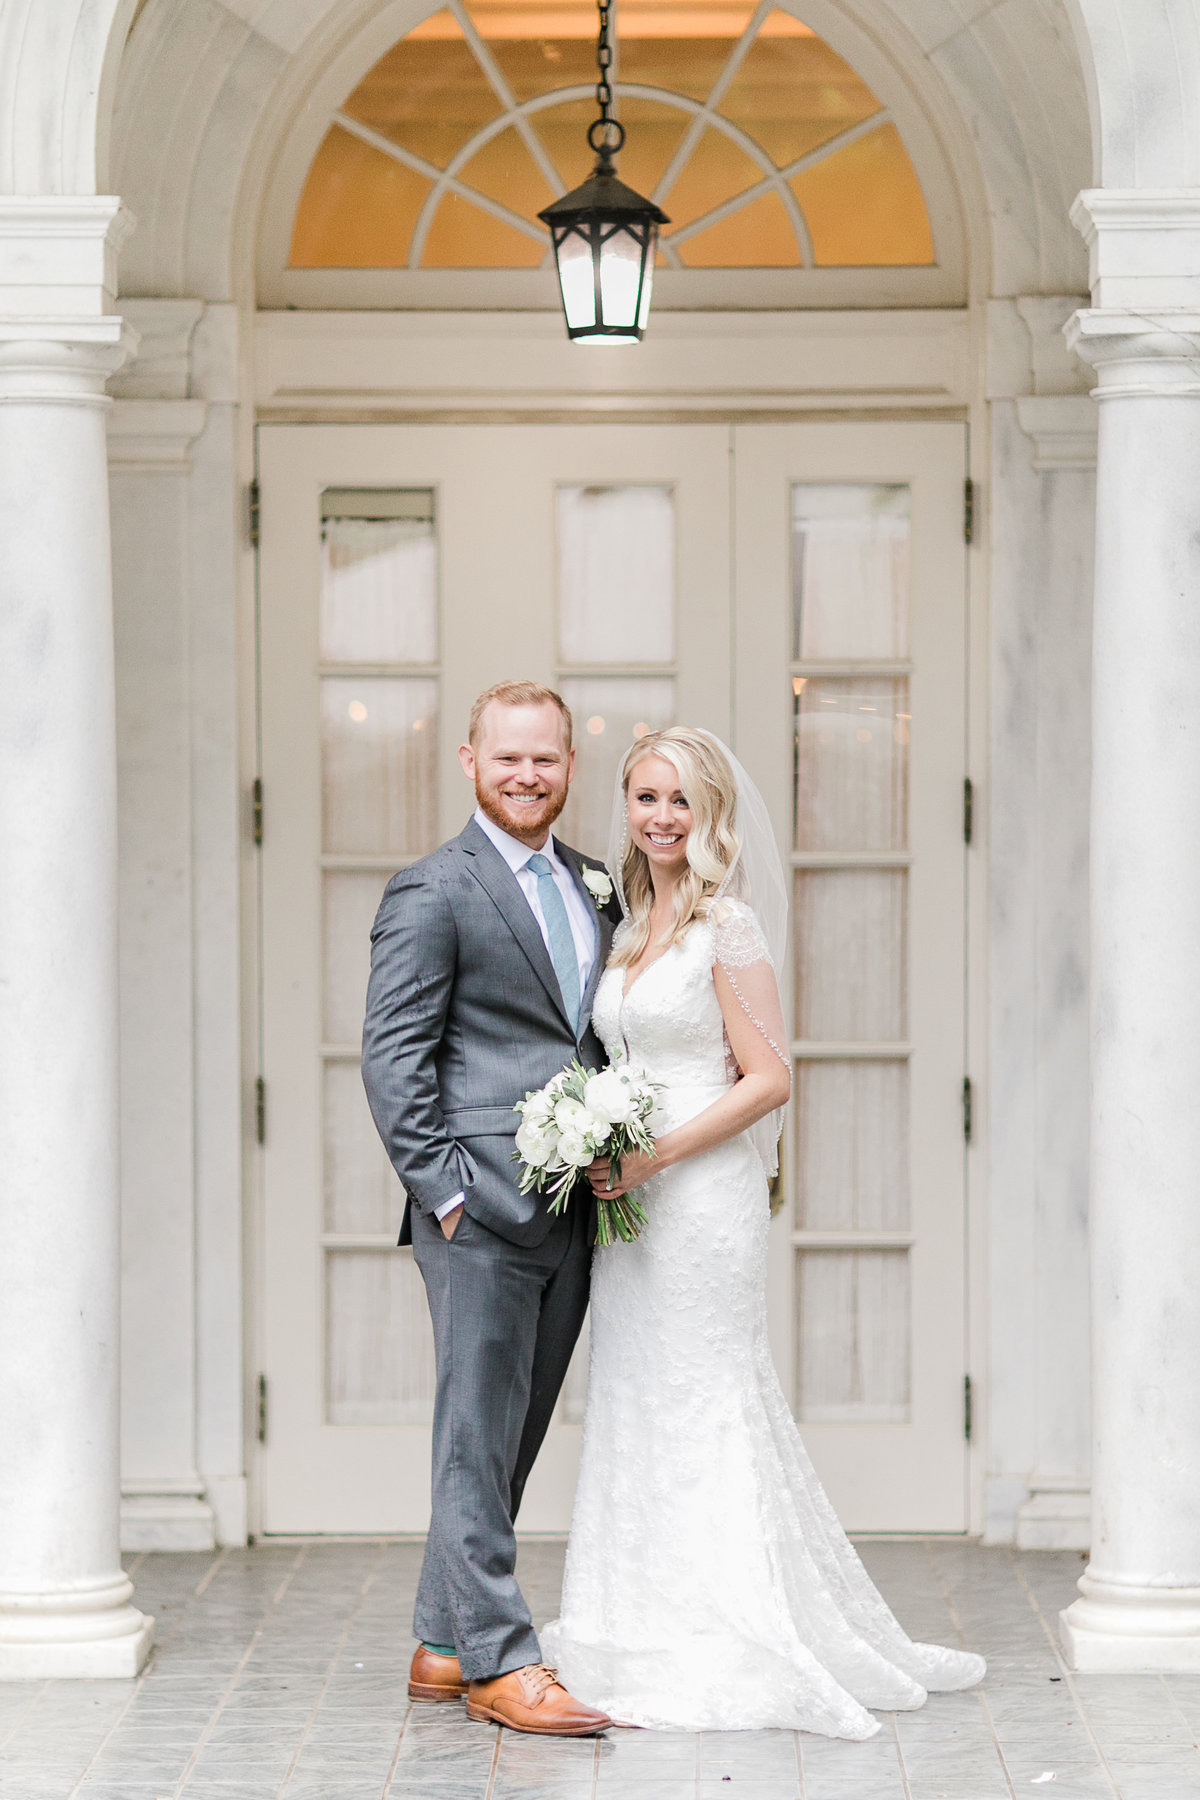 0910_TheWILLETTS_CAITLIN+CHRIS_20180601